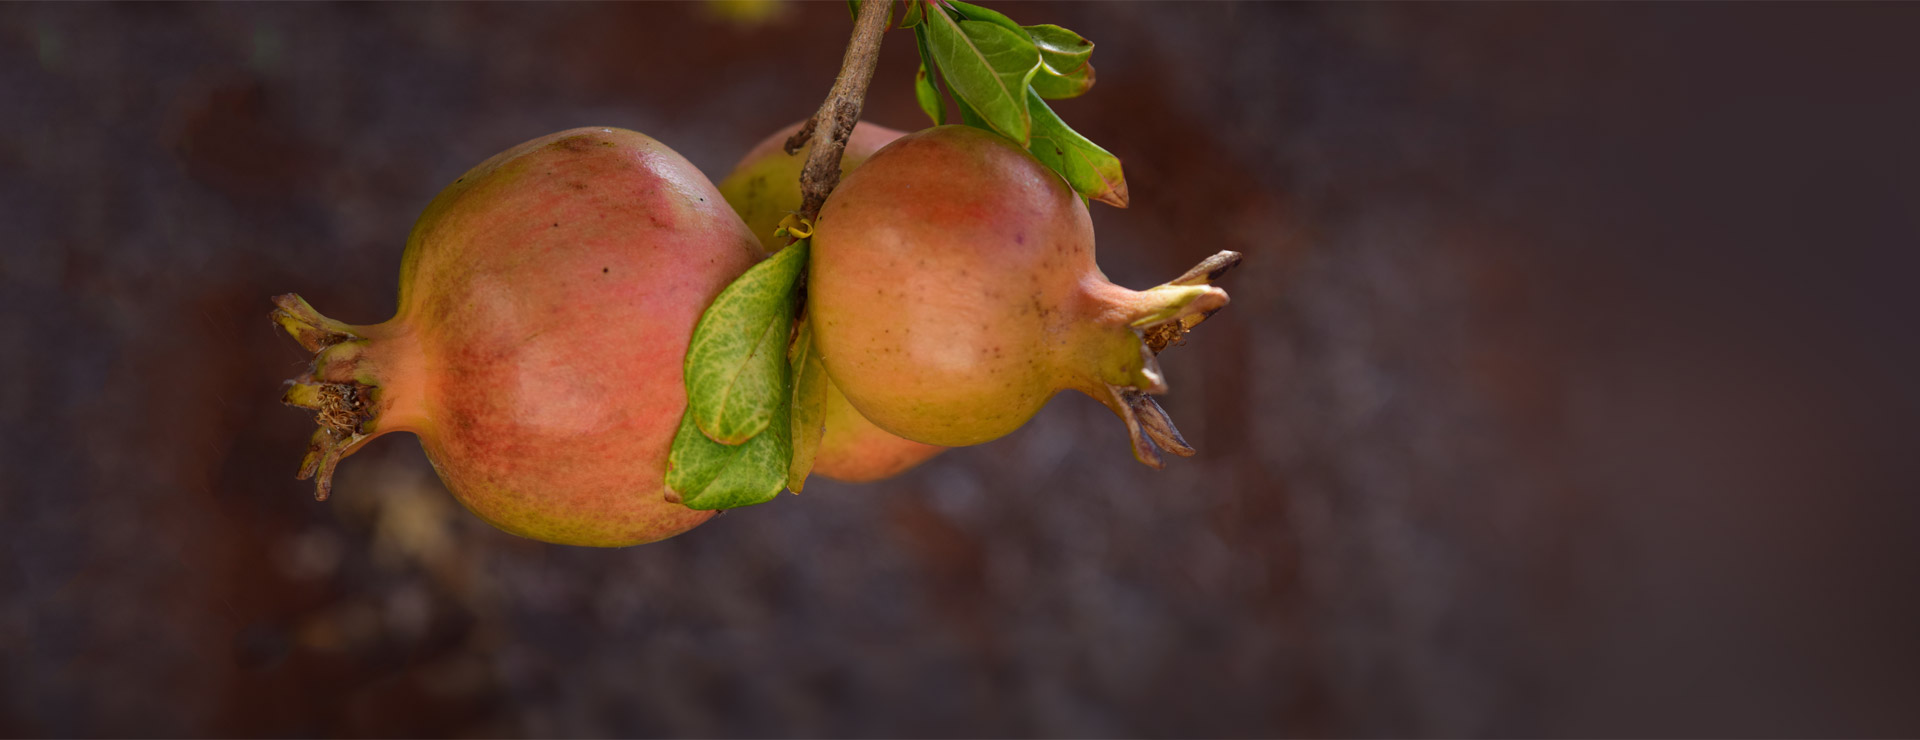 granatapfel_home_header4_1920x7403